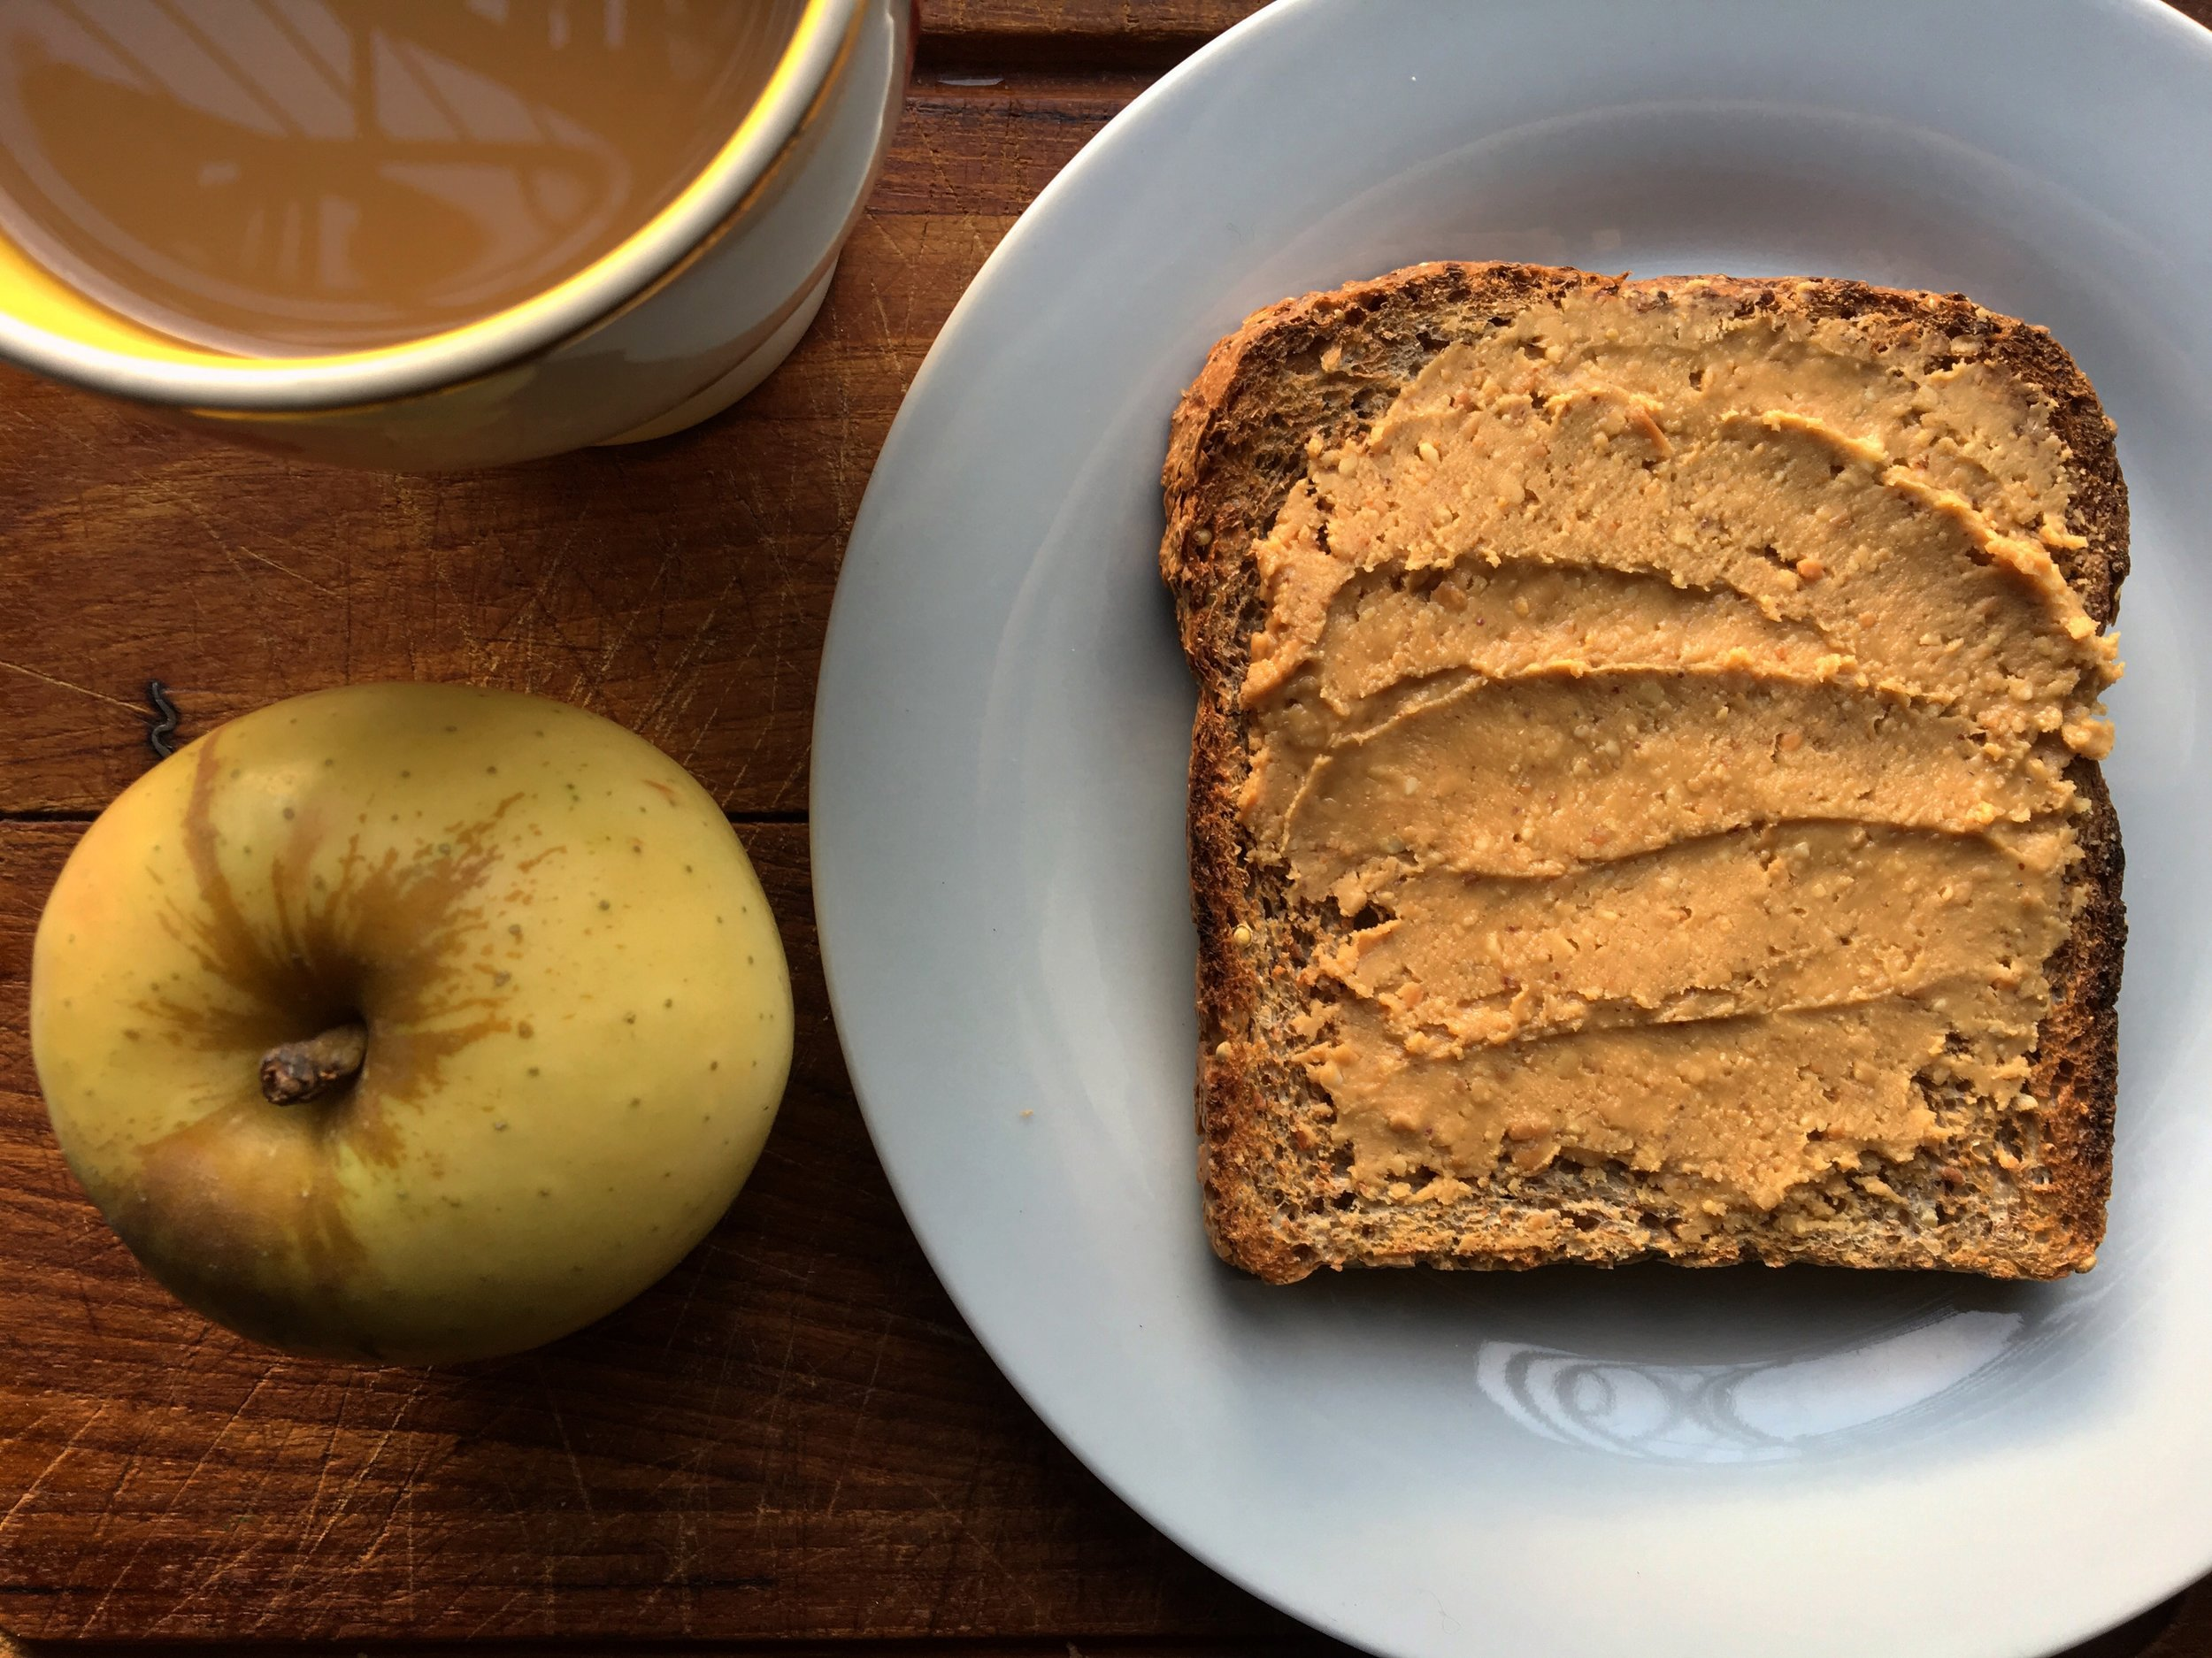 morning minimalism: freshly ground peanut butter on sprouted bread